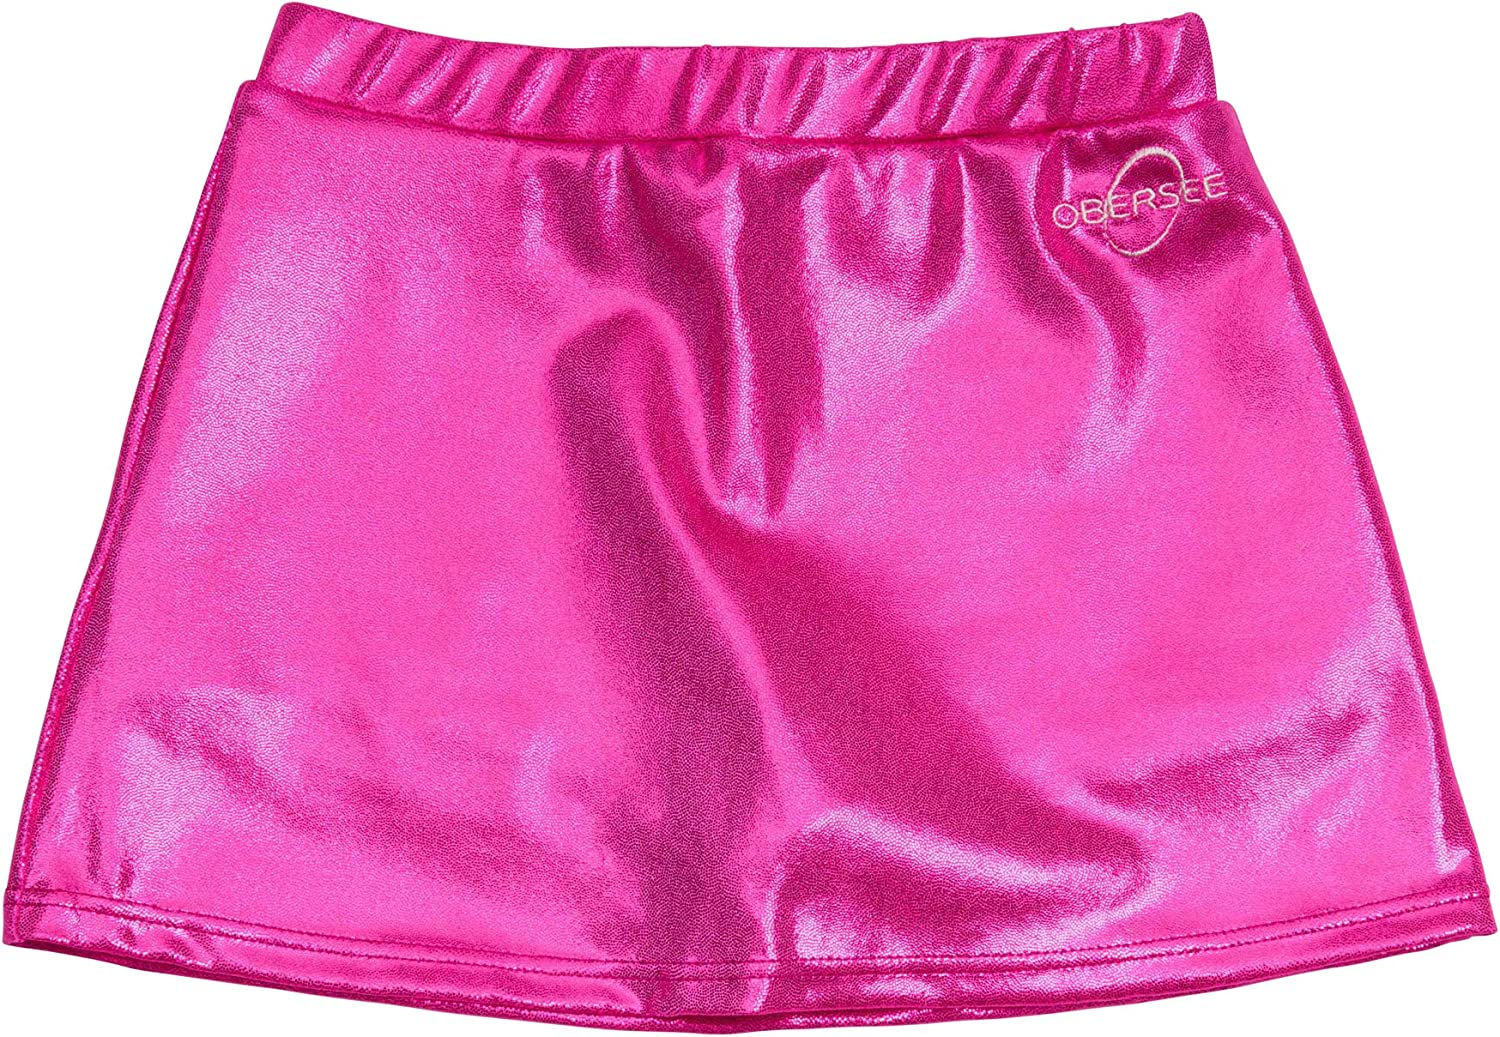 Pink L Obersee Girls 1 Cheer and Dance Skirt